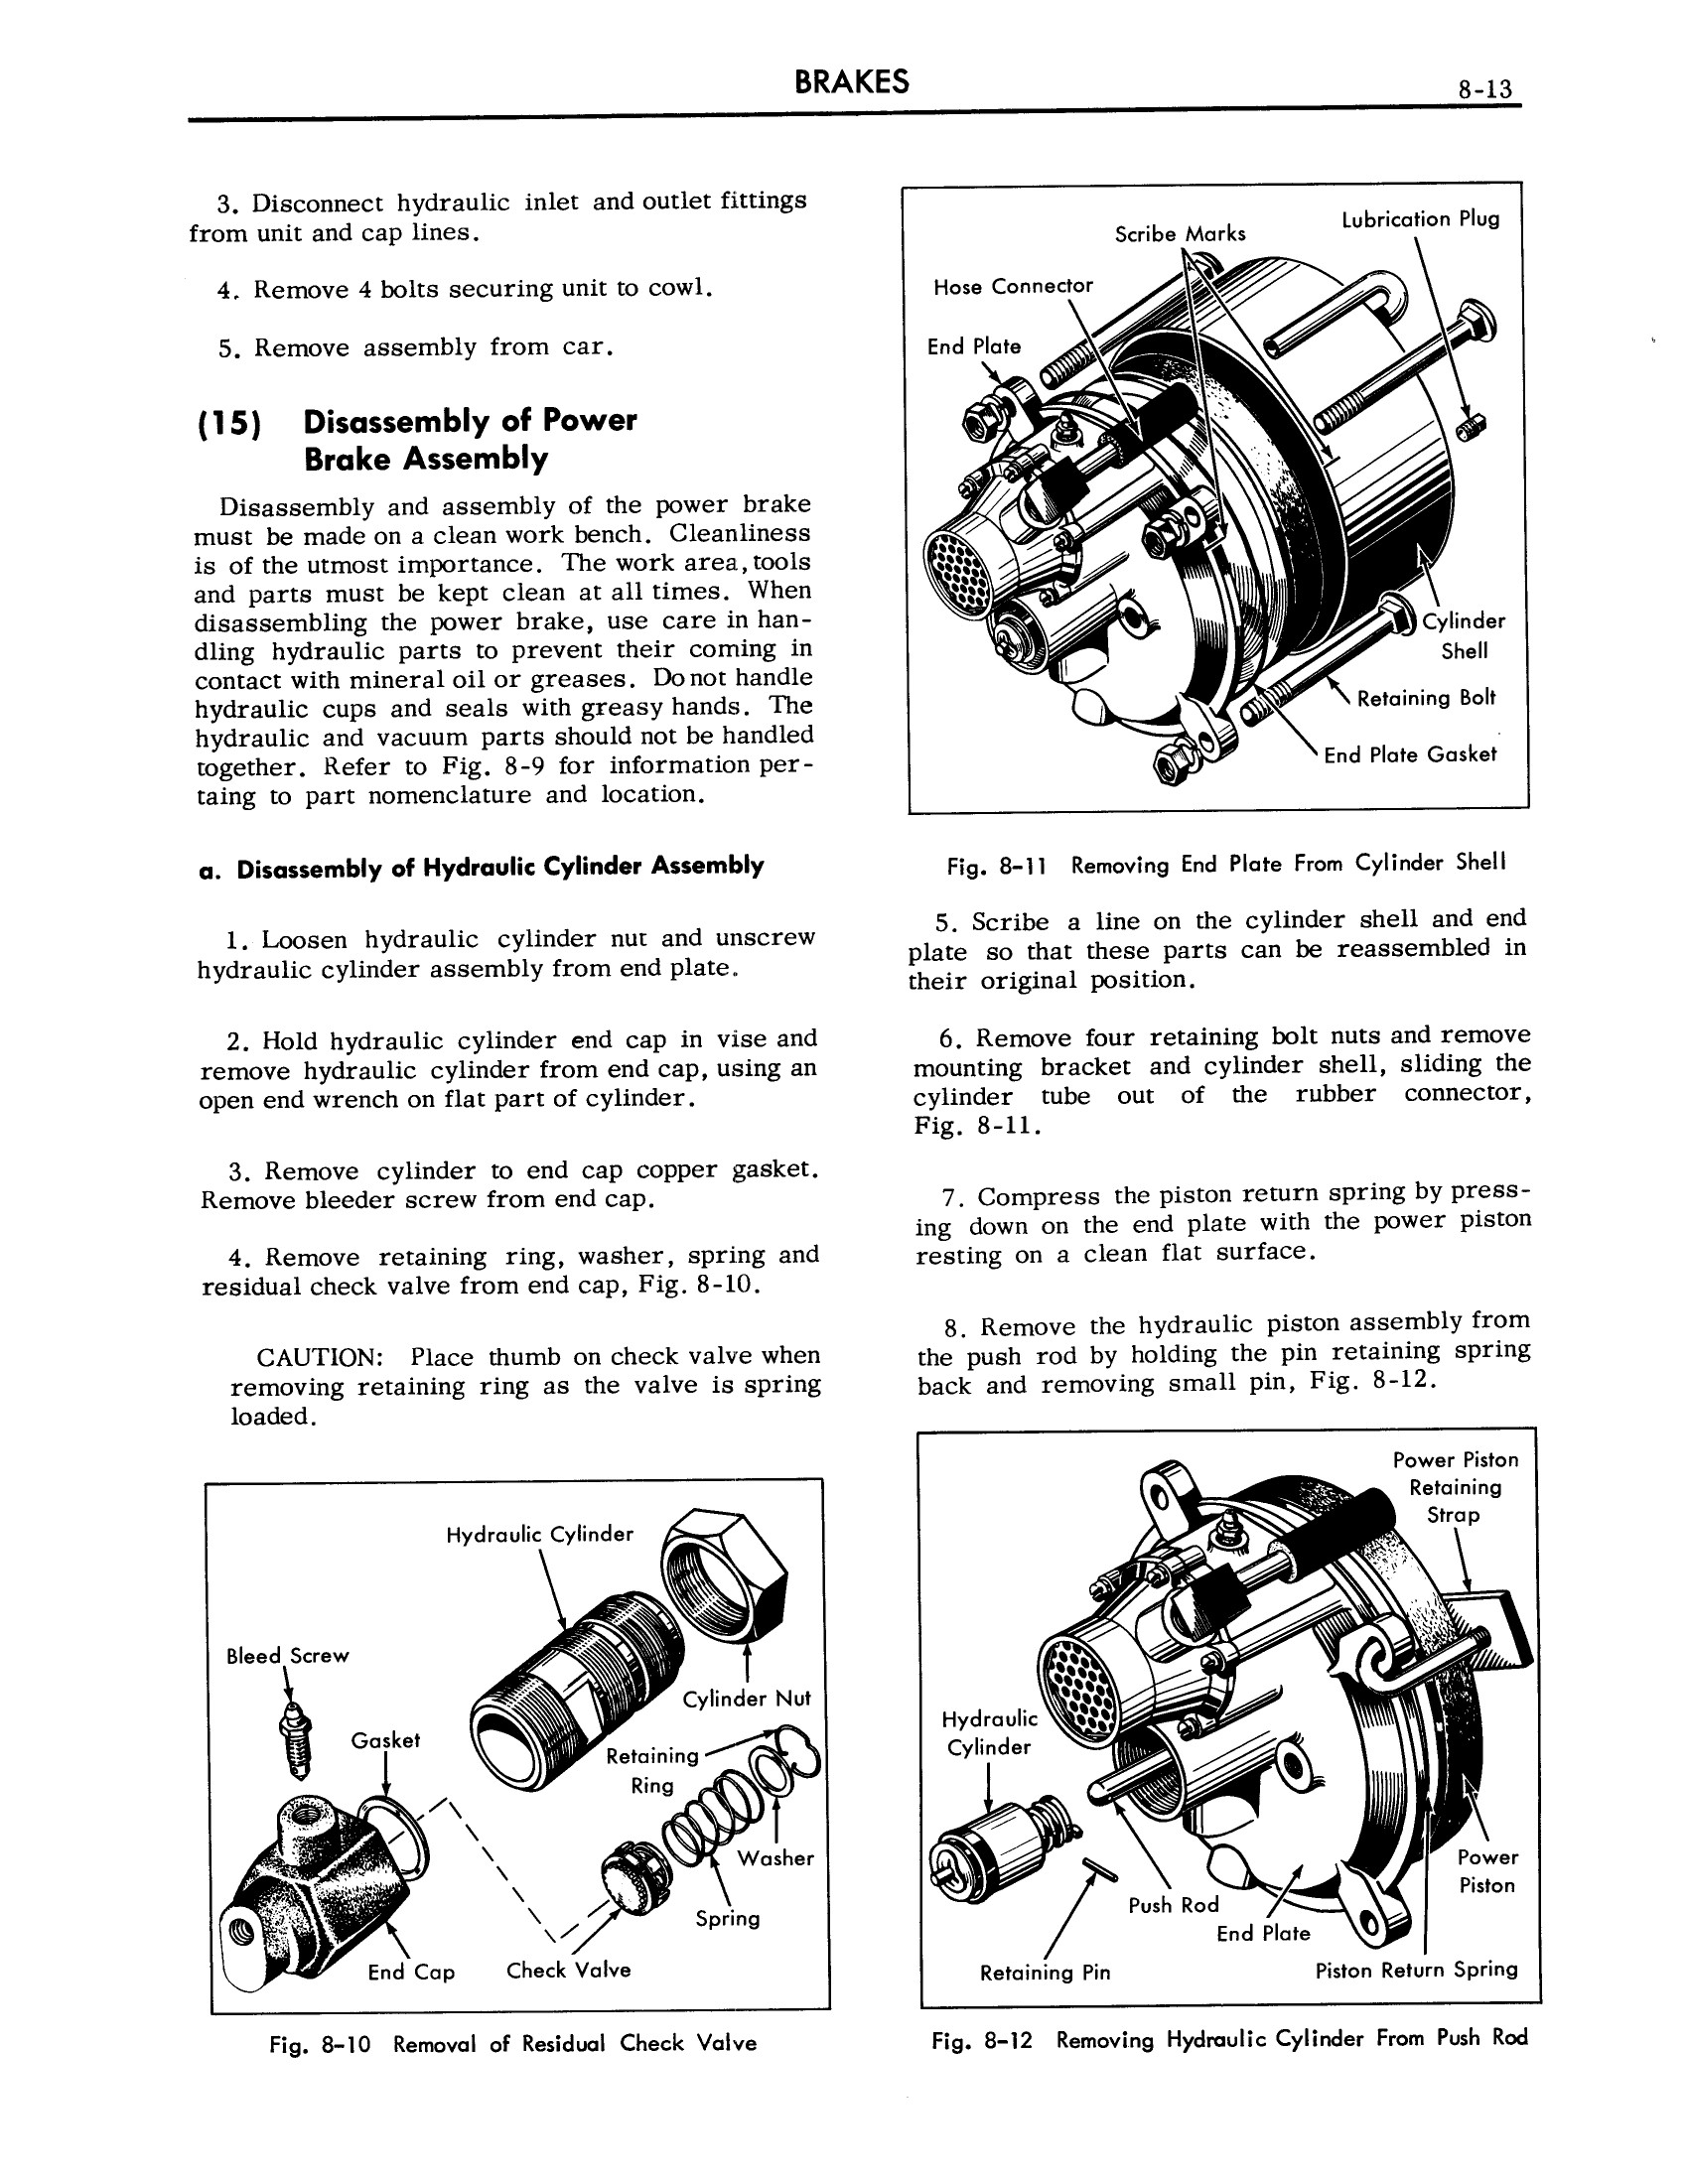 1957 Cadillac Shop Manual- Brakes Page 13 of 26